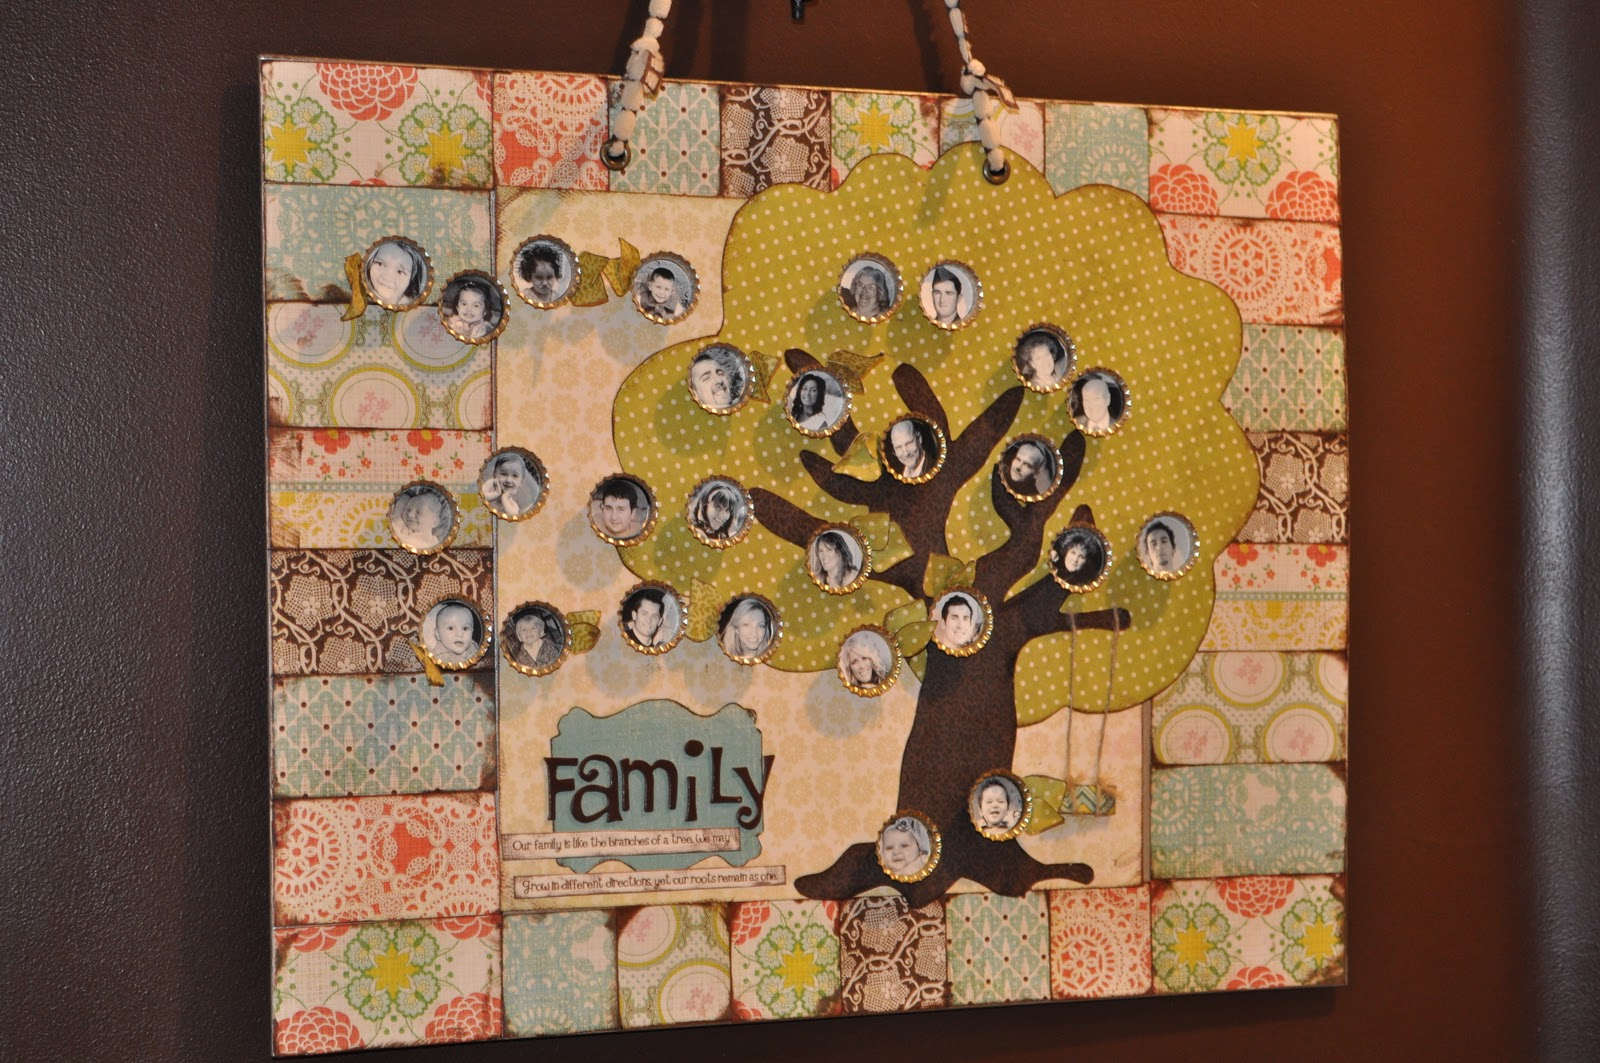 Magnetic craft board - This Is My Board And My Lovely Family This One Is 16 X20 The Paper Is Just Mod Podged On To The Magnet Board I Used E6000 To Adhere The Bottle Caps To